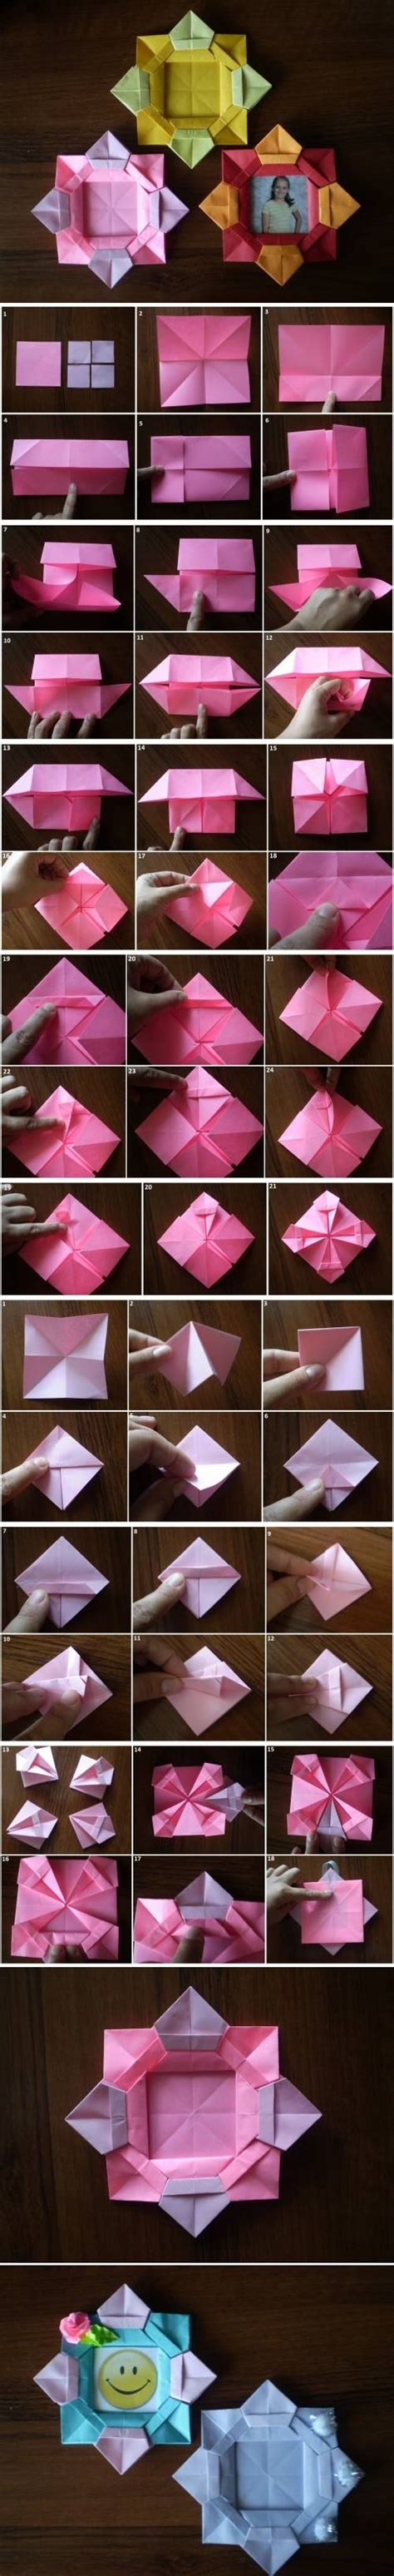 Frame Origami - diy origami flower picture frame pictures photos and